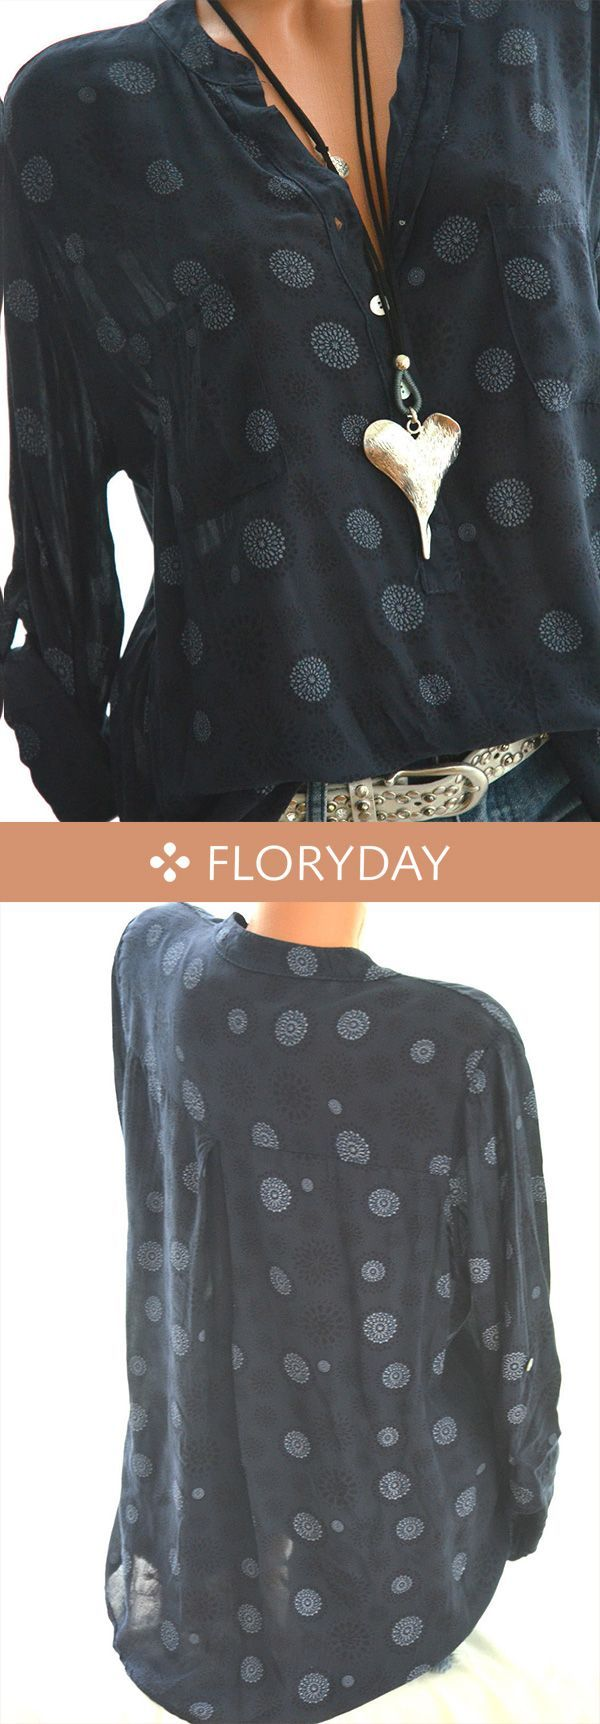 2dd3154081 Shop Floryday for affordable Blouses. Floryday offers latest ladies  Blouses  collections to fit every occasion.